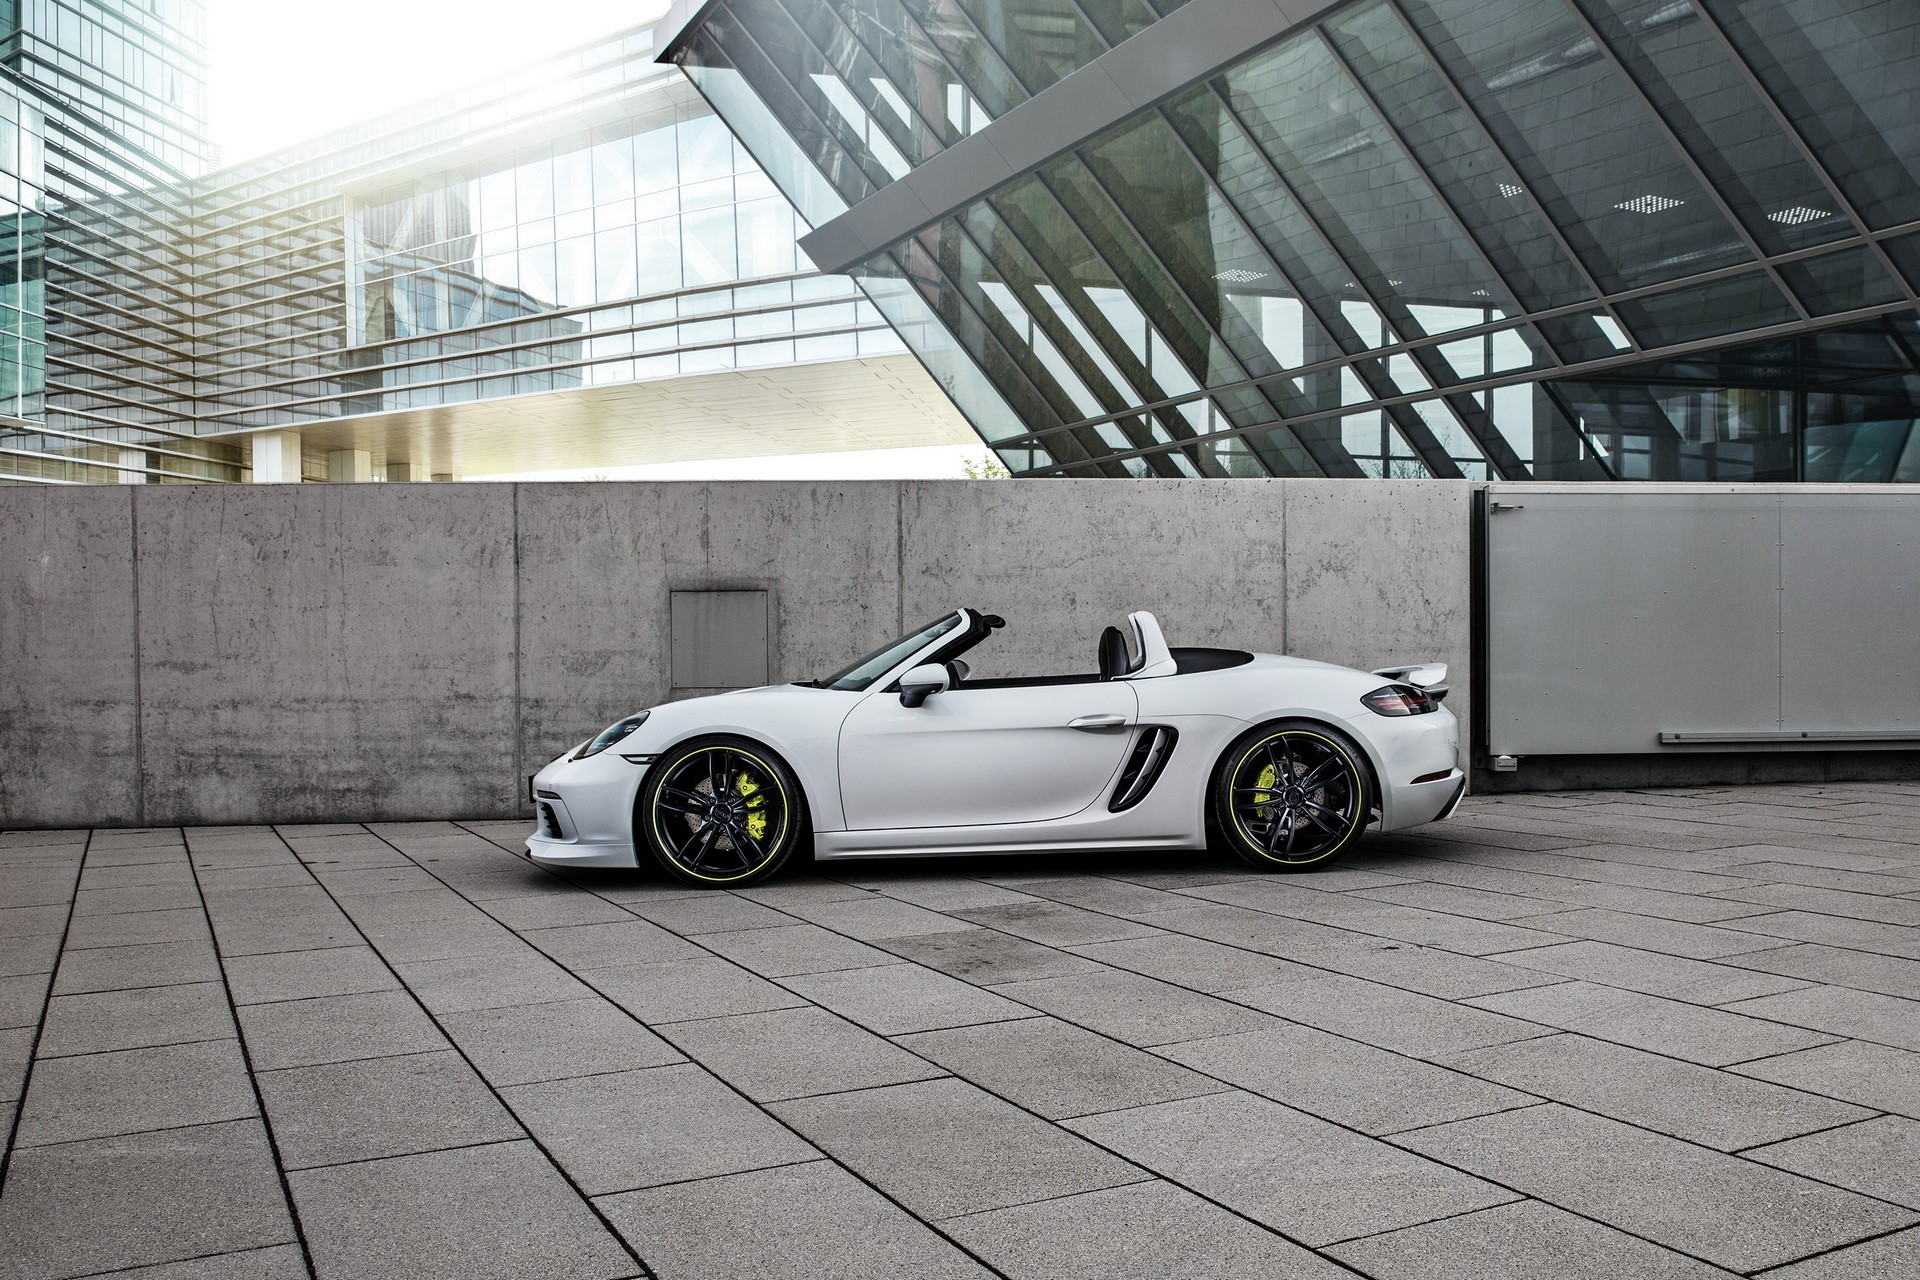 TECHART_718Boxster_ext_02